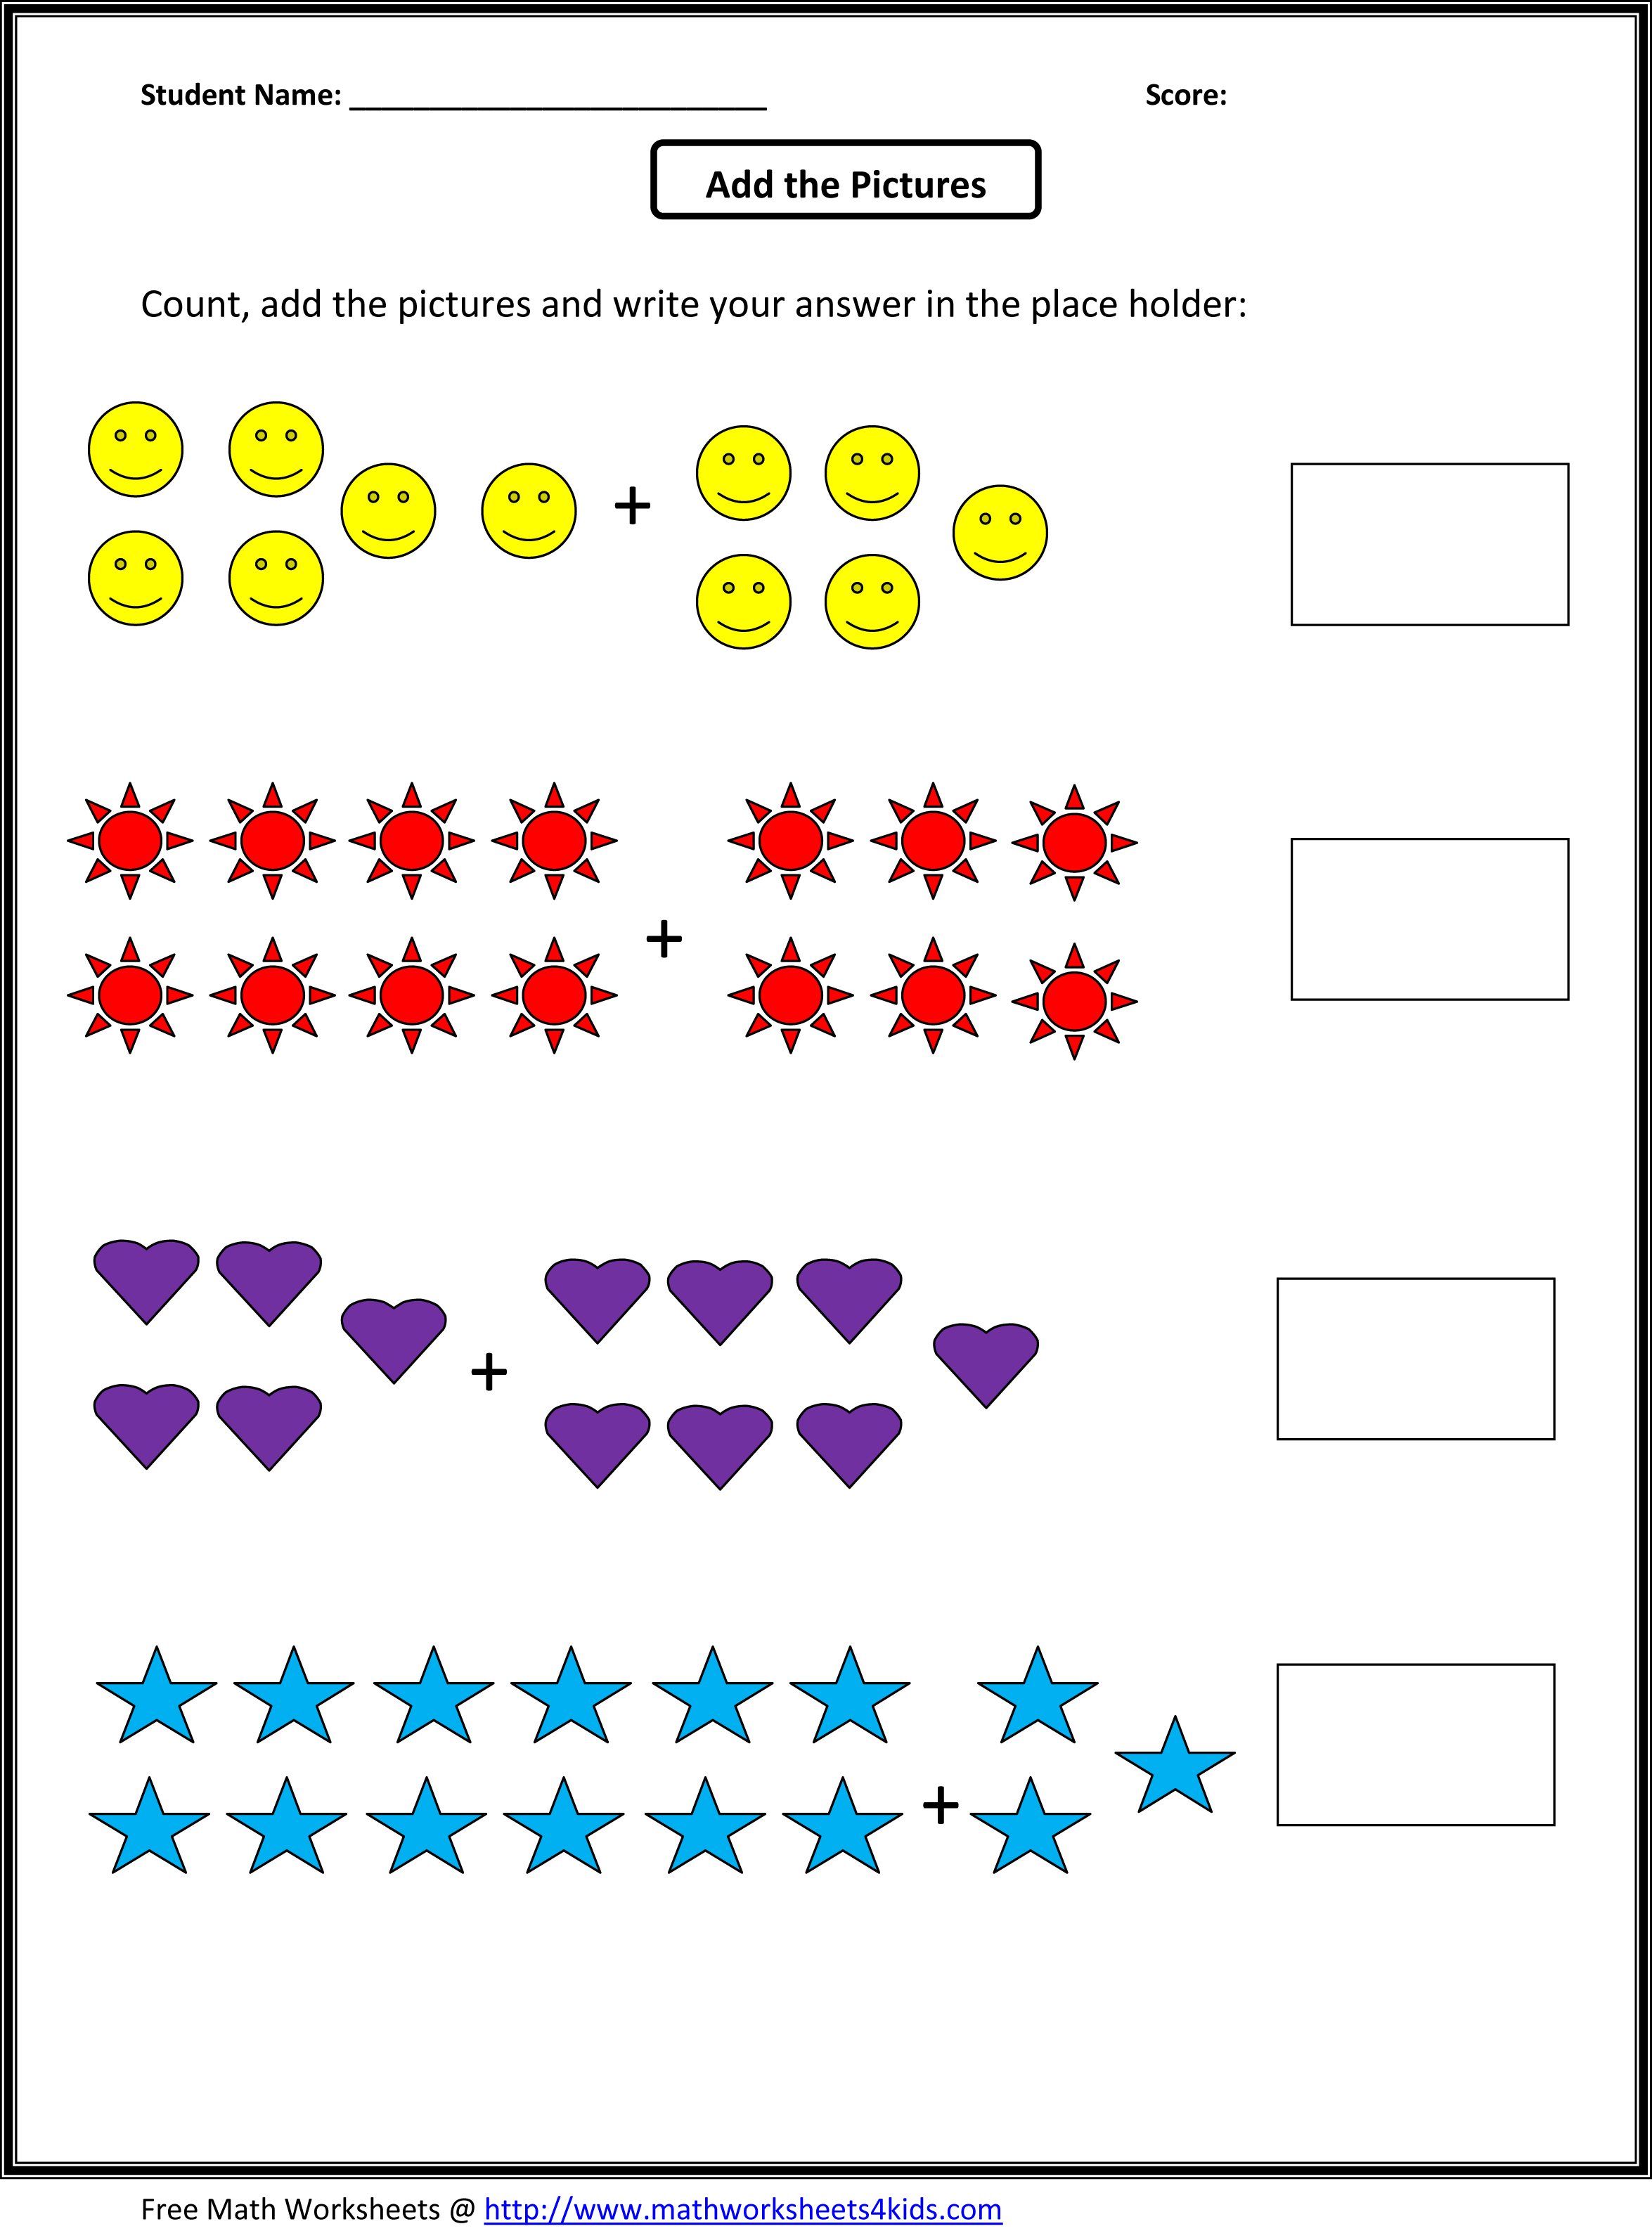 Aldiablosus  Scenic Grade  Maths Worksheet  Reocurent With Marvelous Math Worksheets For St Grade Free  Reocurent With Charming Singular Plurals Worksheets Also Worksheet On Multiplication For Grade  In Addition Worksheets For Preschool Alphabet And Printable English Worksheets For Grade  As Well As Sedimentary Rocks Worksheets Additionally Free Printable Maths Worksheets Ks From Reocurentcom With Aldiablosus  Marvelous Grade  Maths Worksheet  Reocurent With Charming Math Worksheets For St Grade Free  Reocurent And Scenic Singular Plurals Worksheets Also Worksheet On Multiplication For Grade  In Addition Worksheets For Preschool Alphabet From Reocurentcom